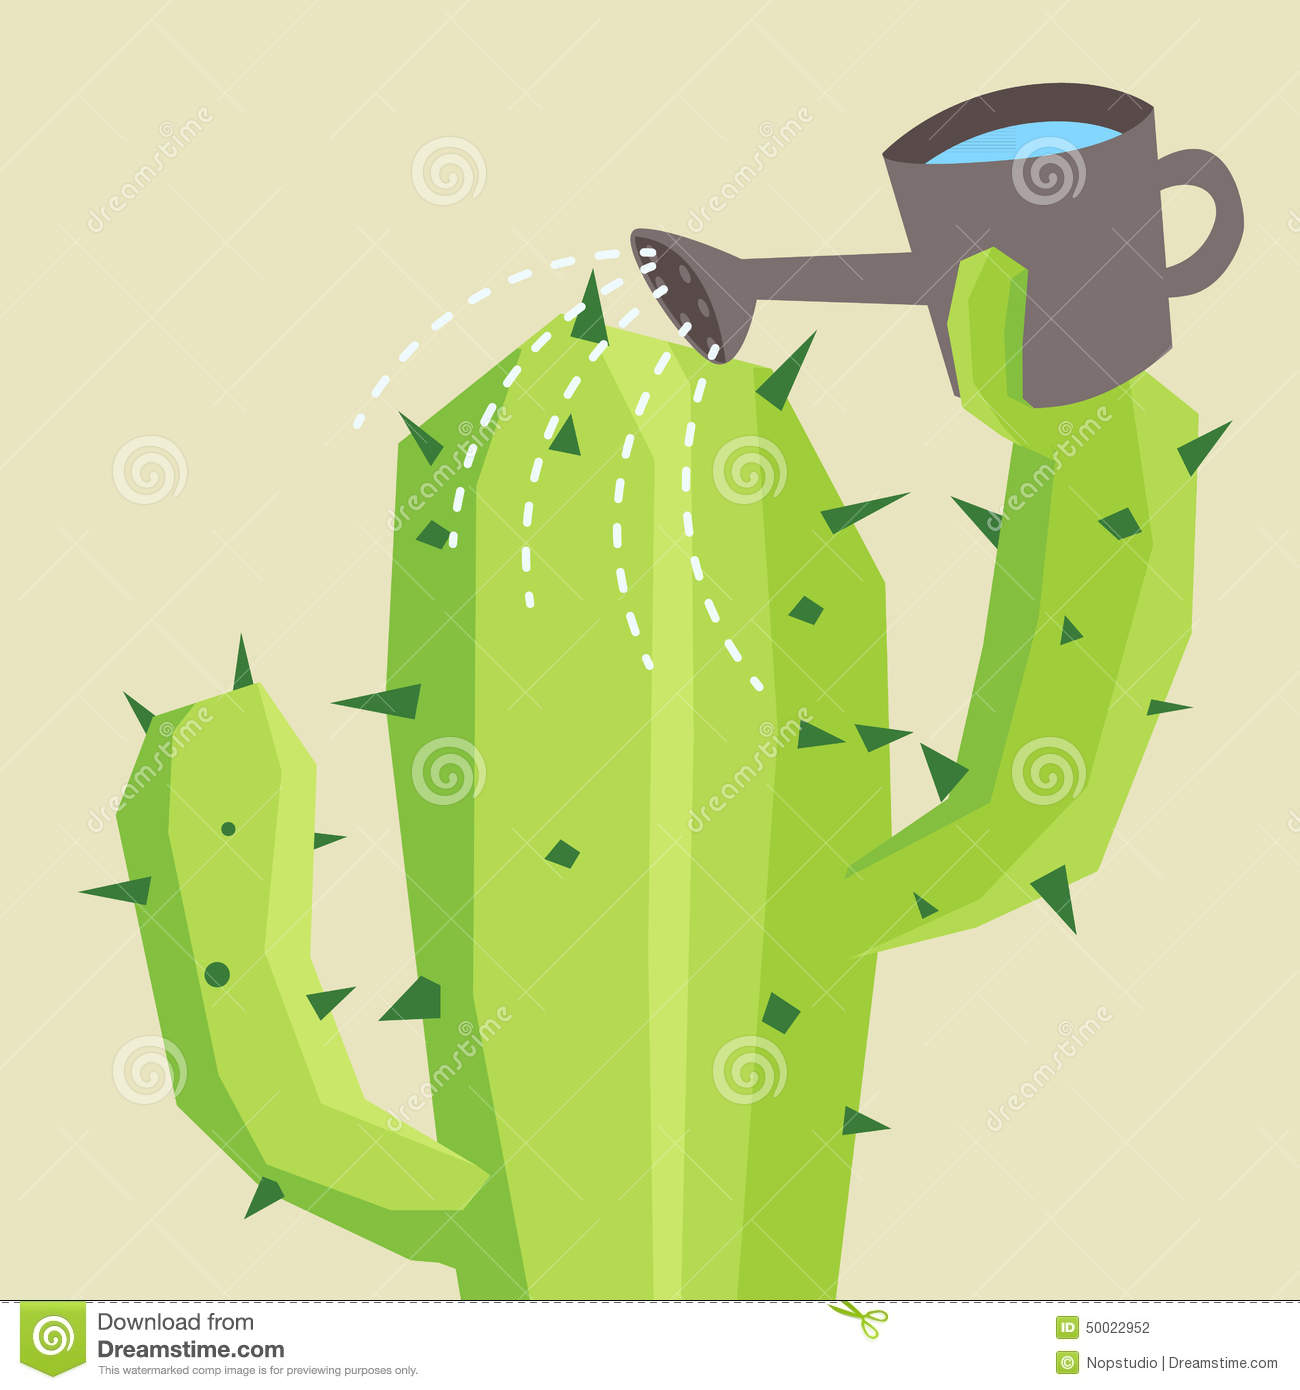 how to make cactus water